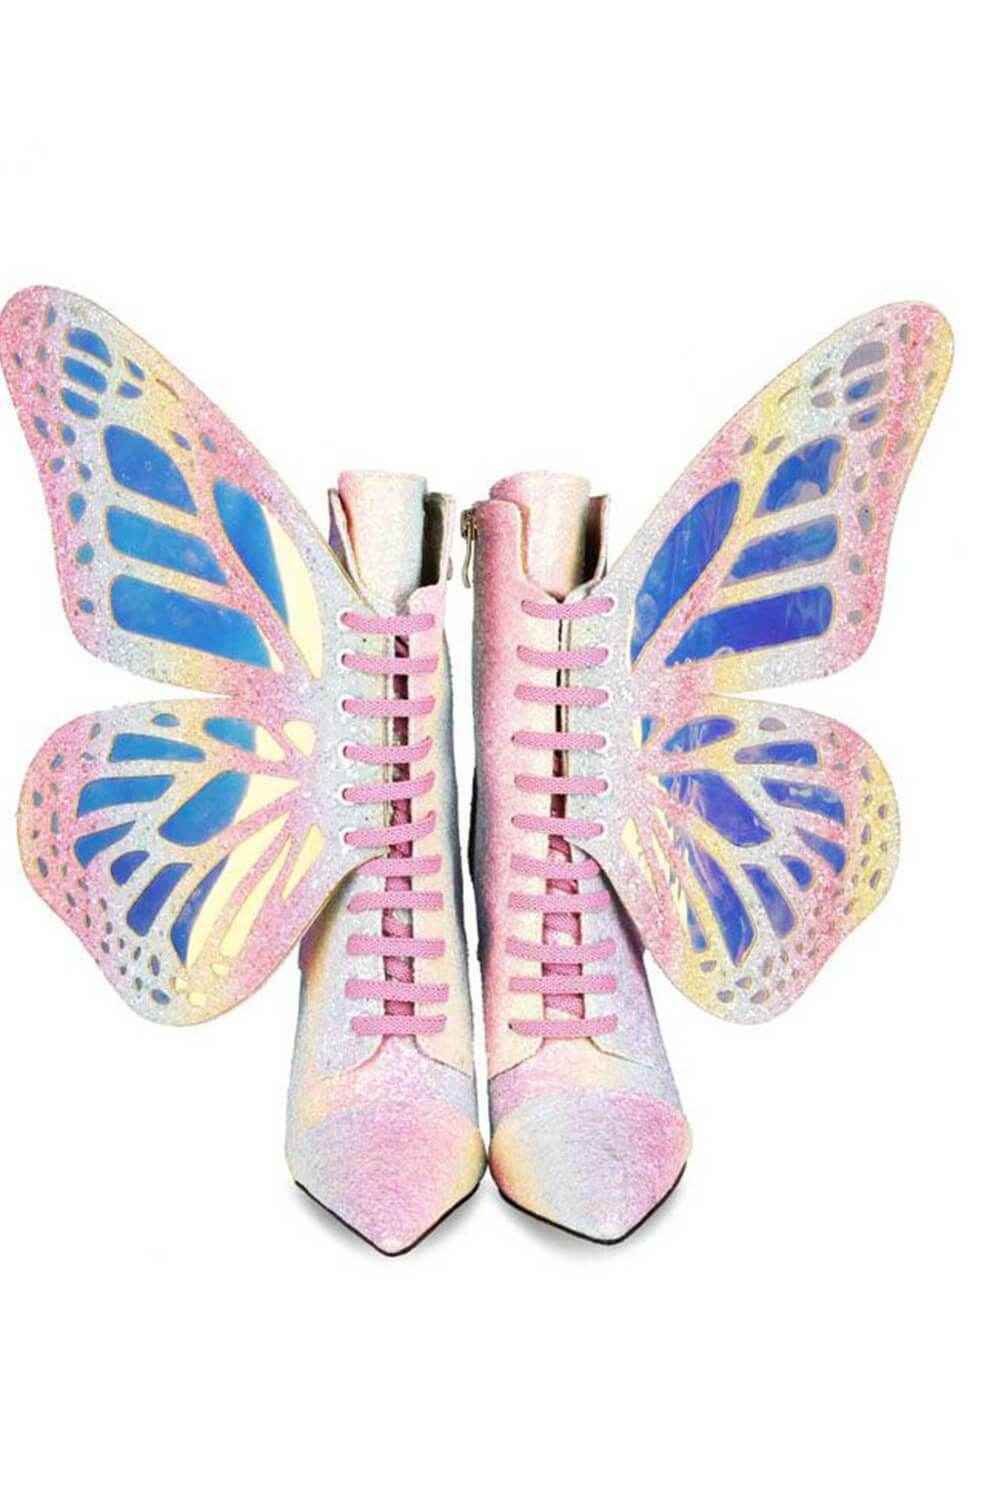 Rainbow Metamorphic Glitter Lace Up Heeled Boots With Butterfly Wings